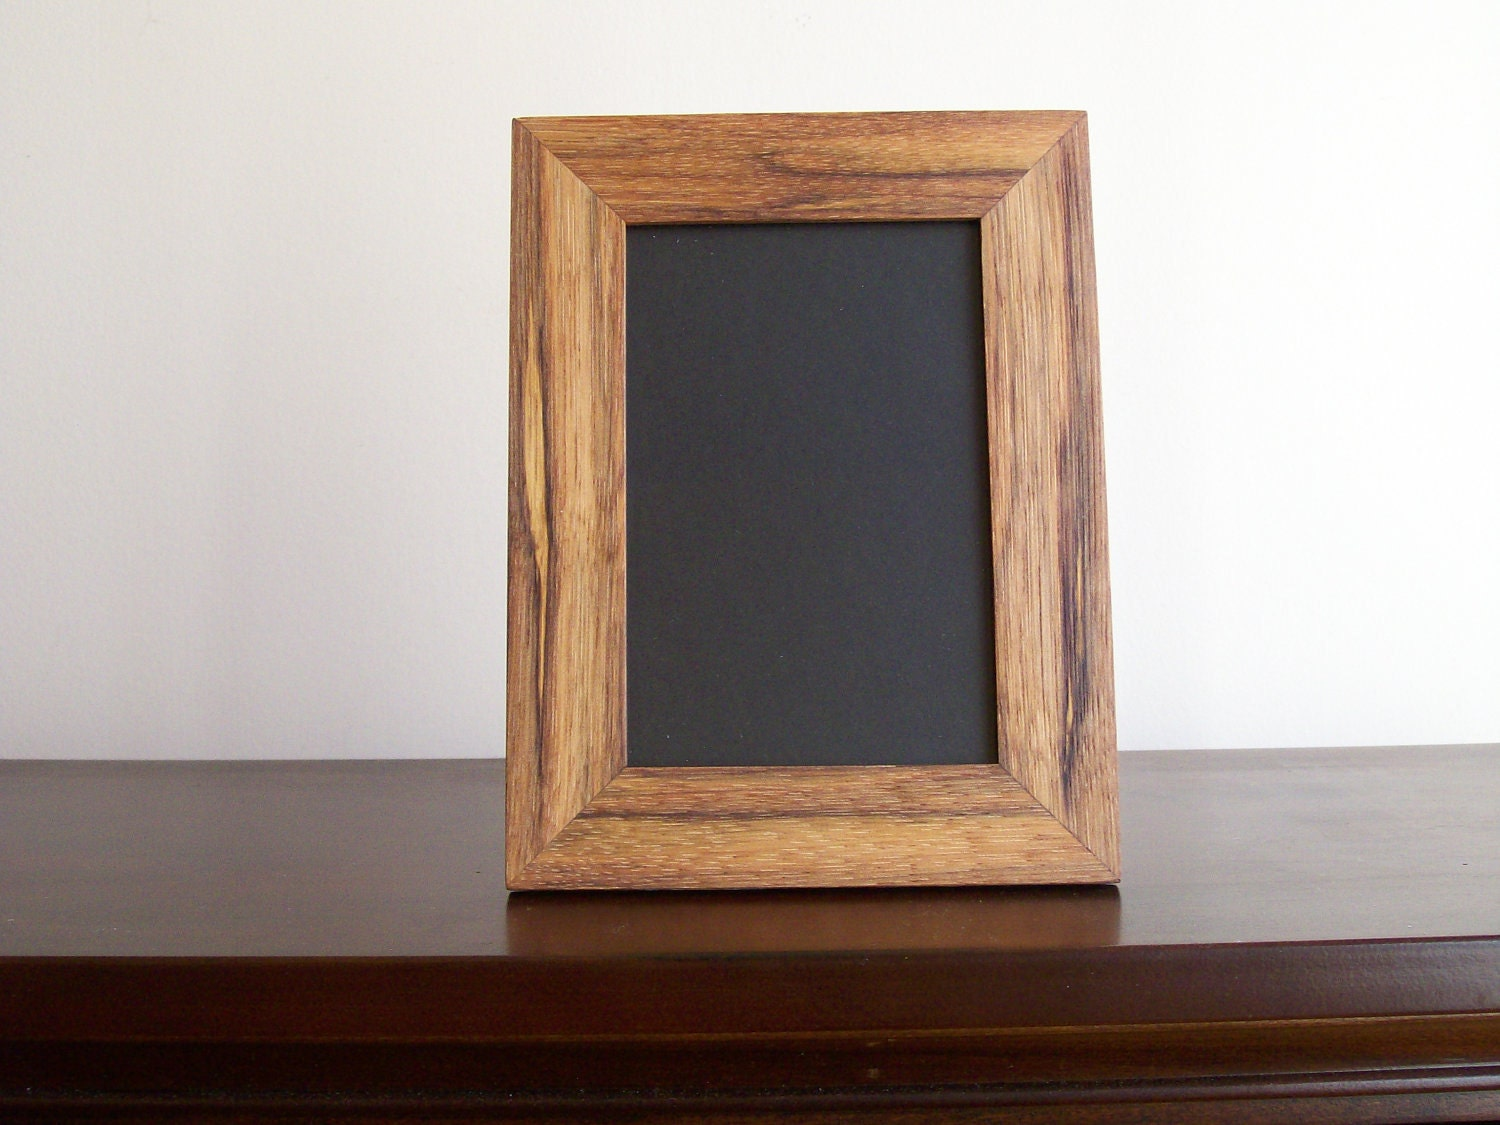 Complete 4x6 Hickory Wood Desk Wall Picture Frame